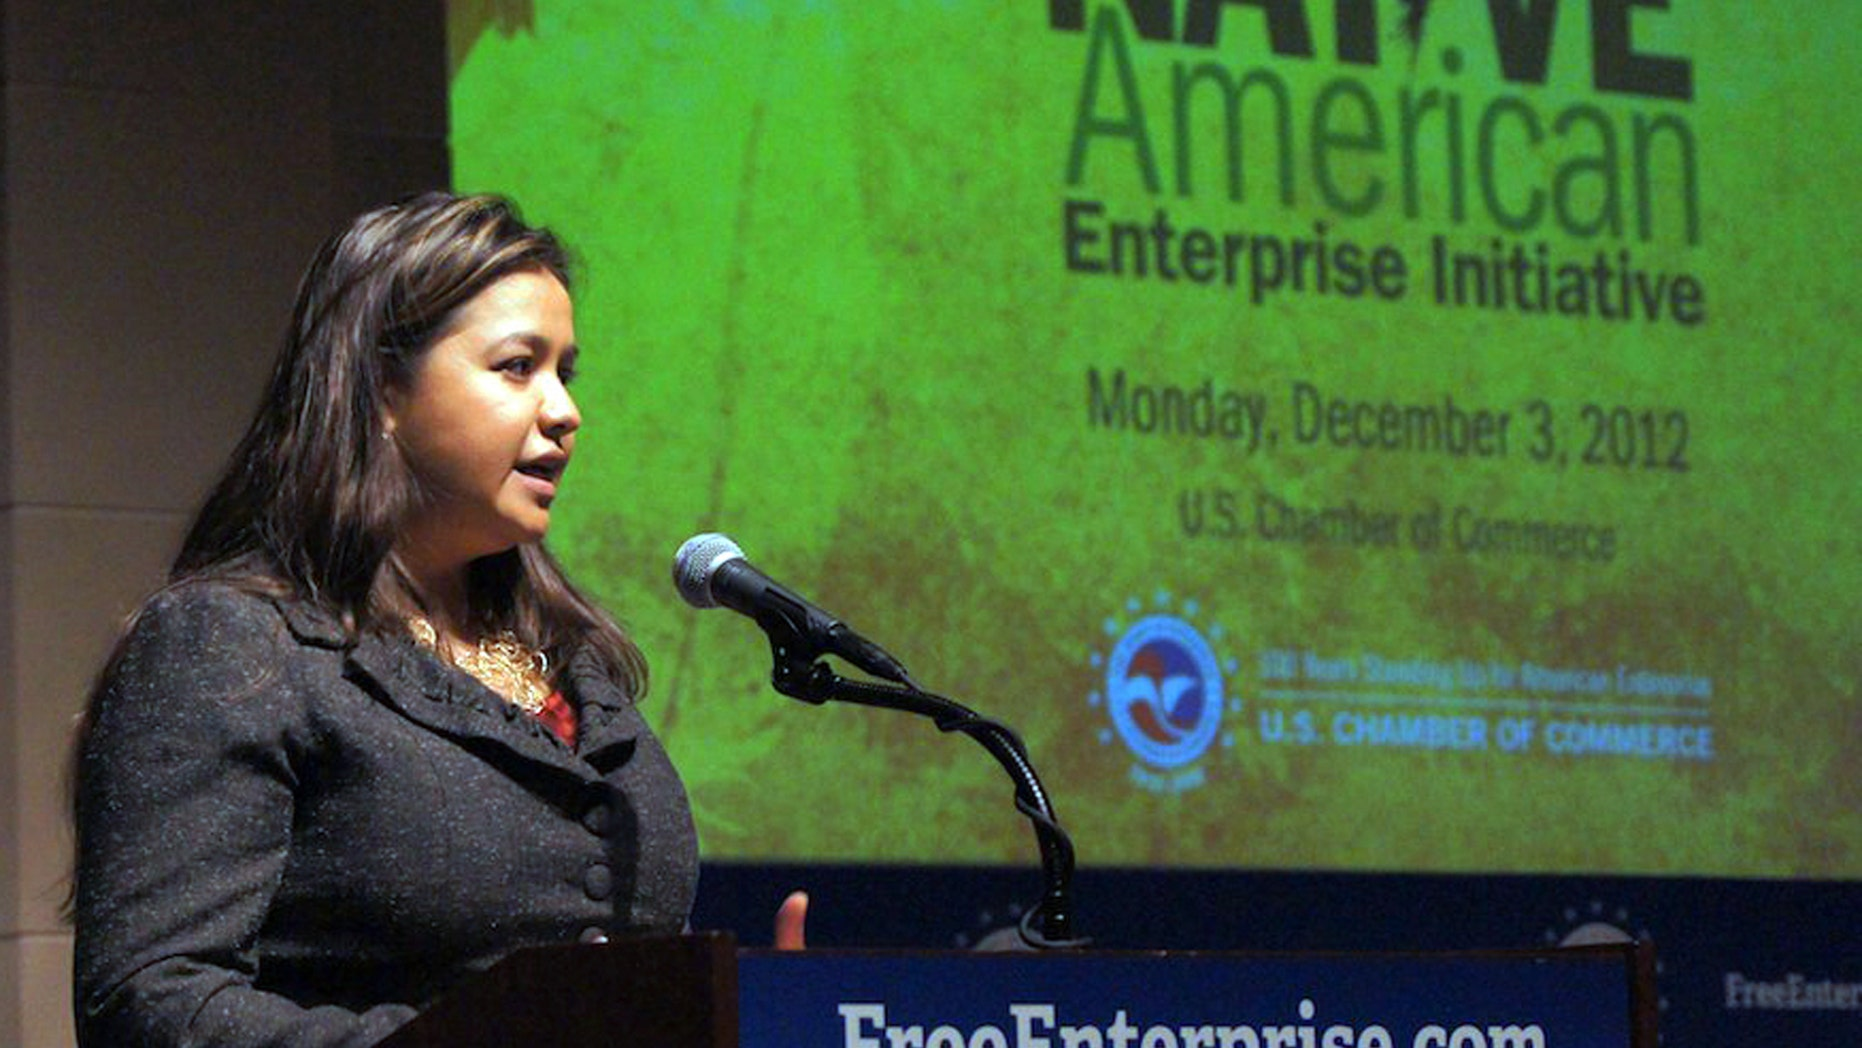 Dec. 3, 2012: In this photo provided by the Navajo Nation Washington Office, Navajo Nation executive director Clara Pratte addresses economic development during the Navajo Nation meeting of the Native American Enterprise Initiative, in Washington.